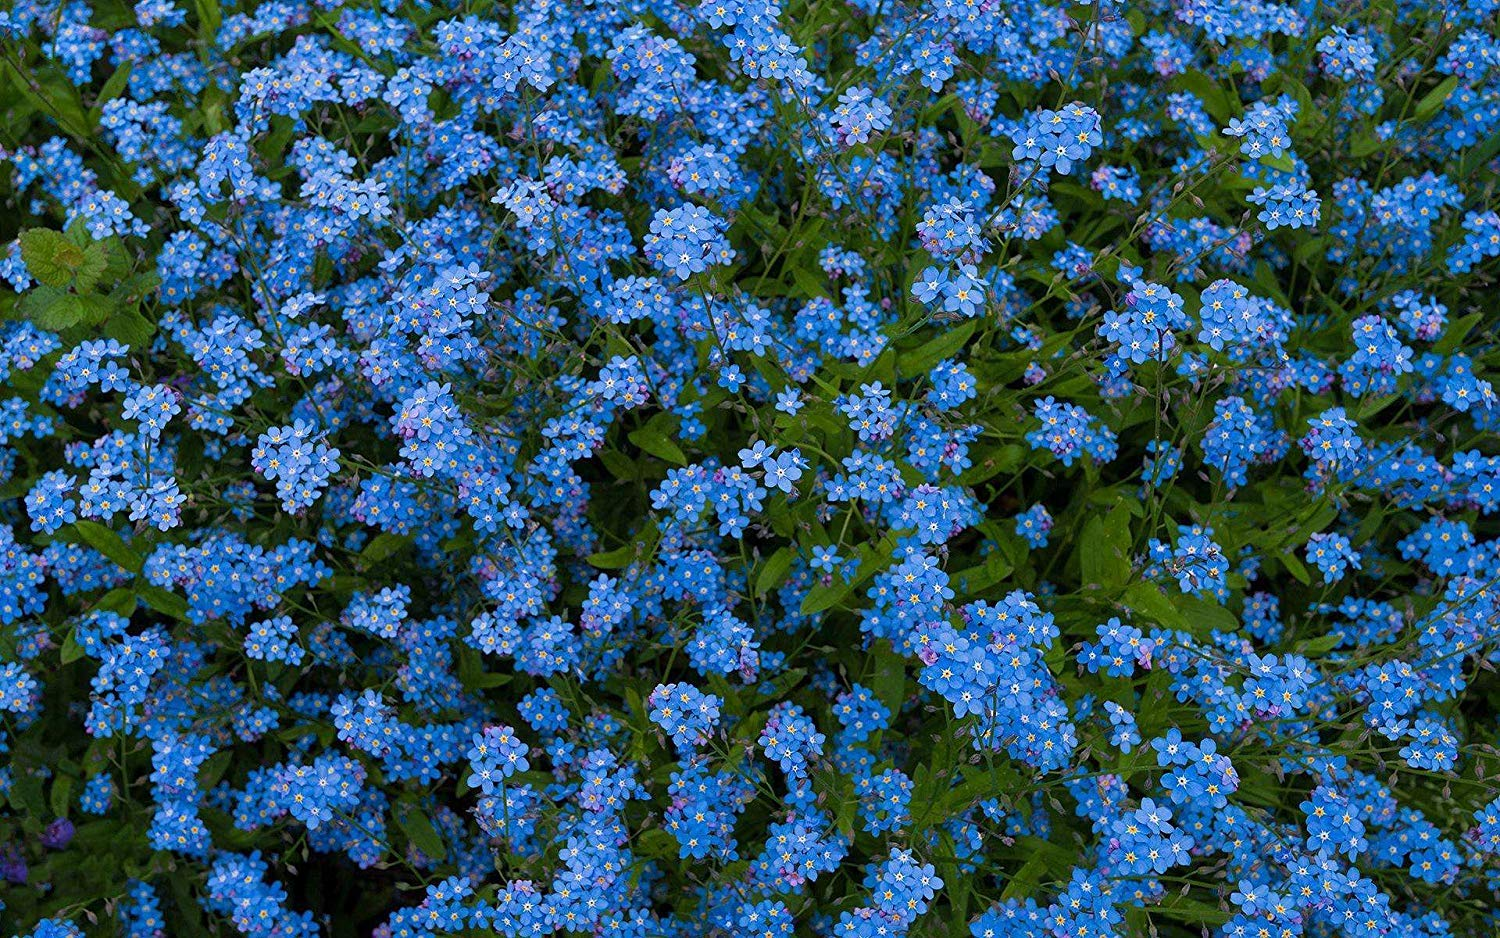 Non-GMO Blue Flower Seeds for Planting in The Garden Home Balcony Yard Decoration Flowers Plants-50Seeds Chinese Forget Me Not Seeds Blue Cynoglossum amabile